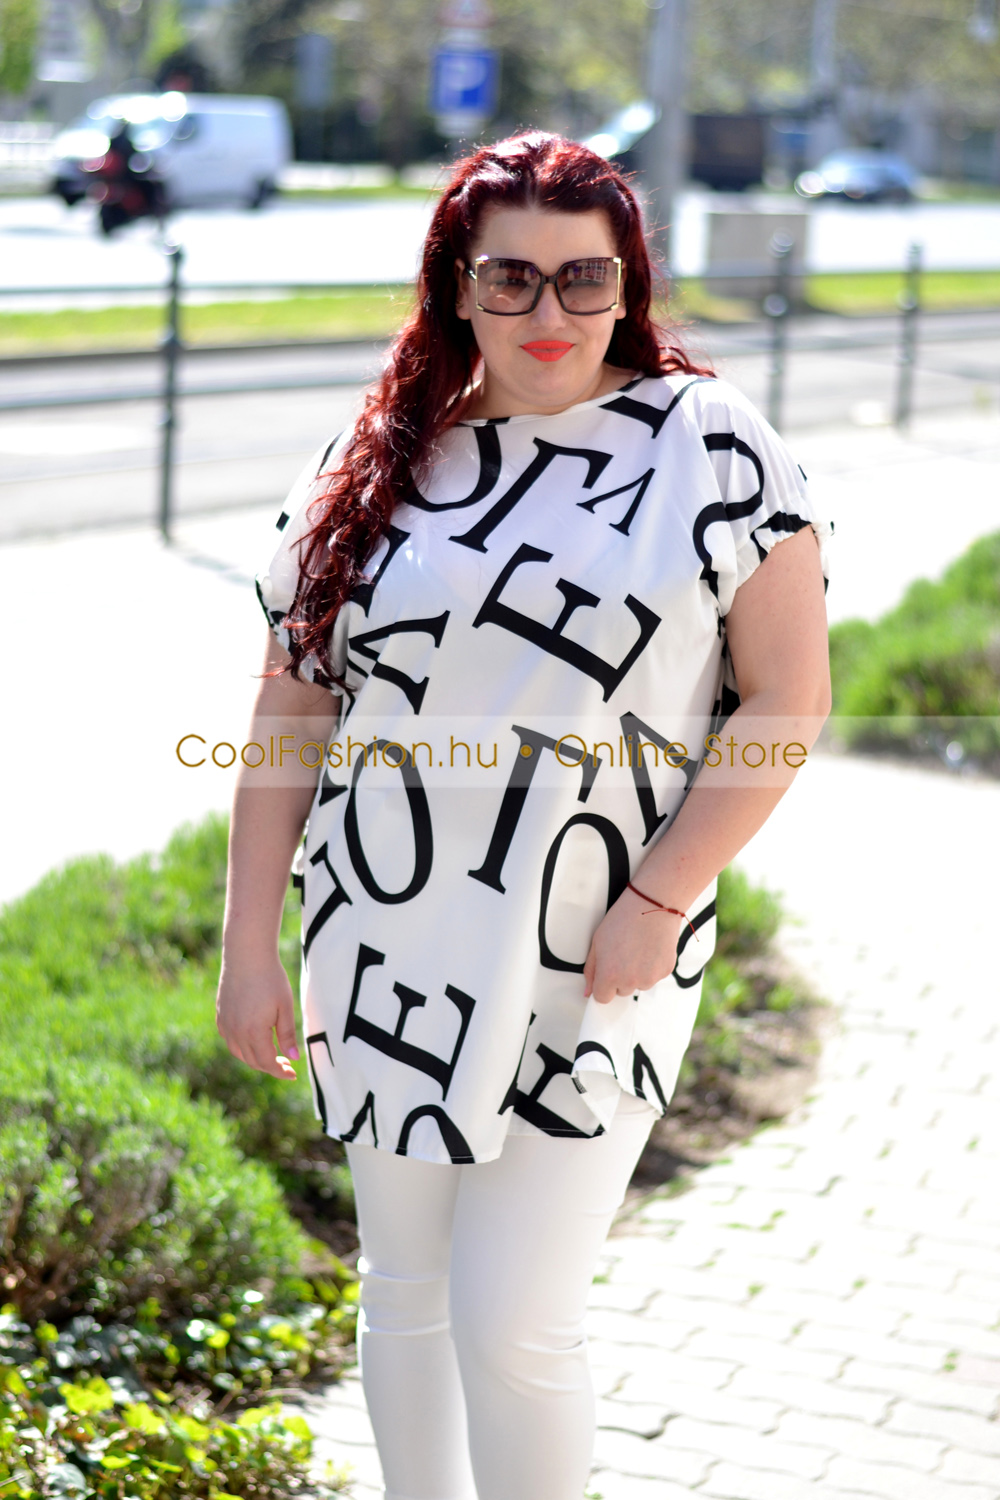 41ca9bf970 Oversize LOVE mintás ruha/tunika - Cool Fashion